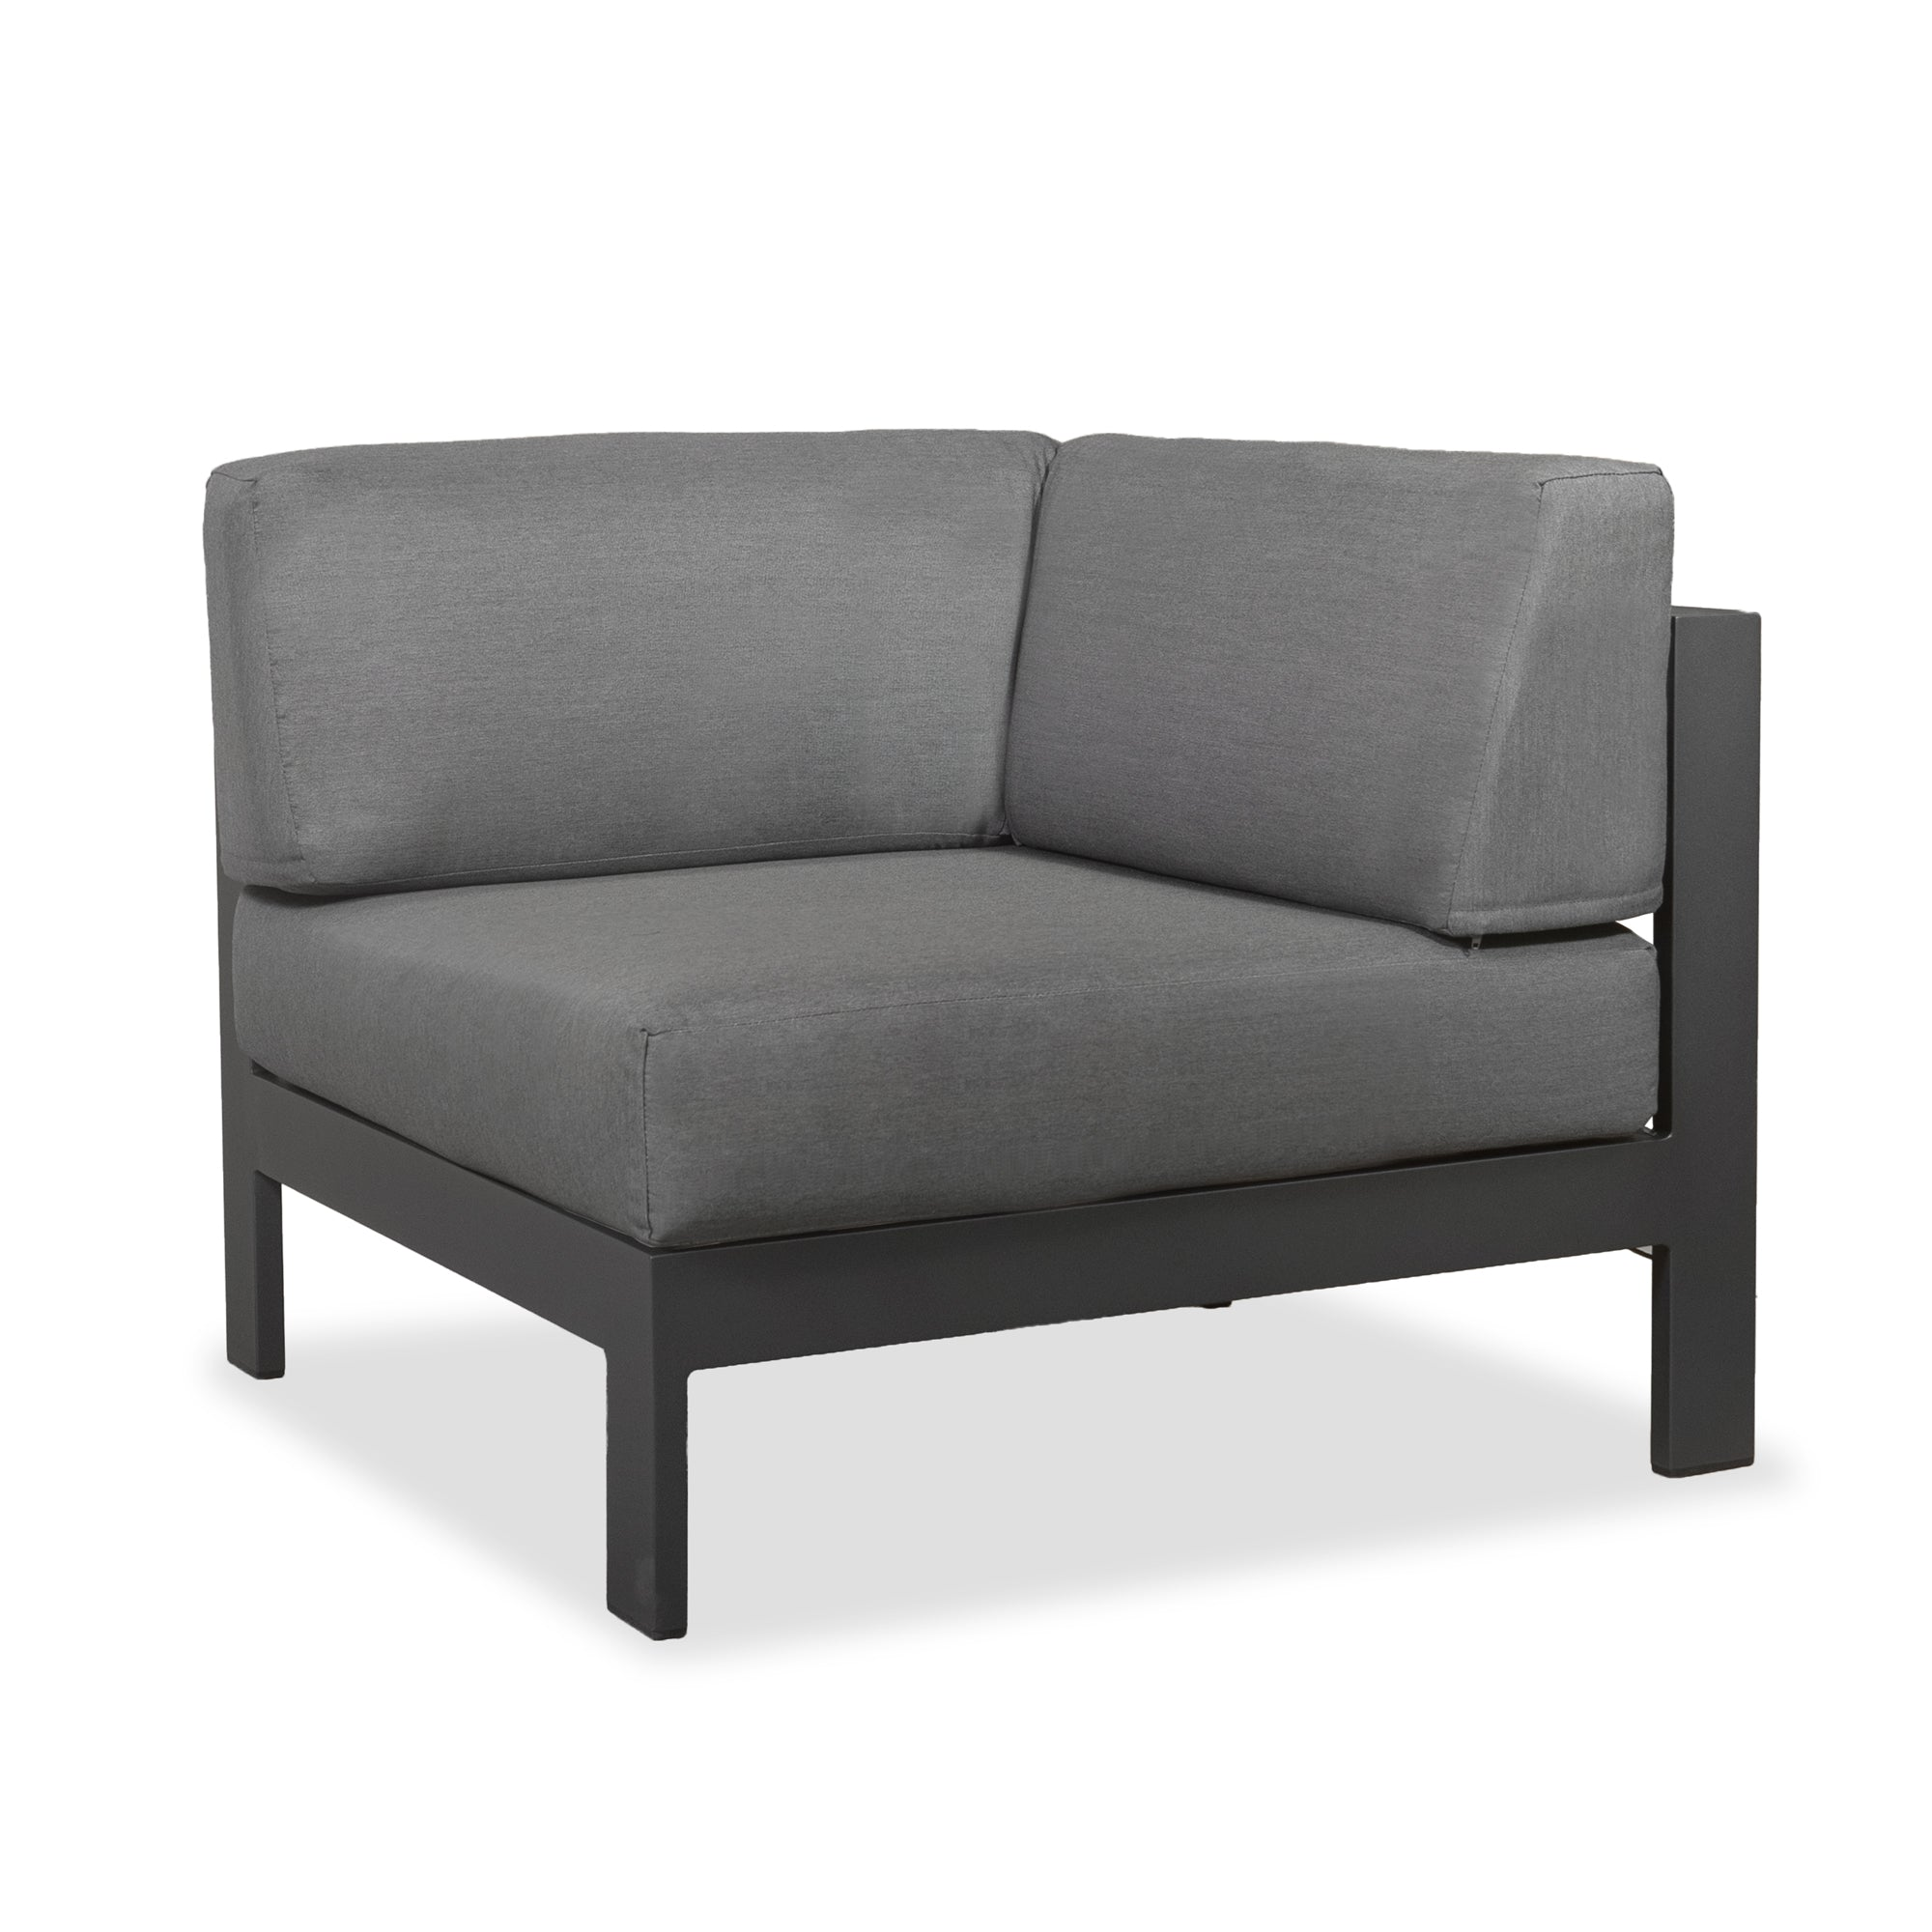 Evette Corner Sofa (Nori Handelab), Sofa - Home-Buy Interiors